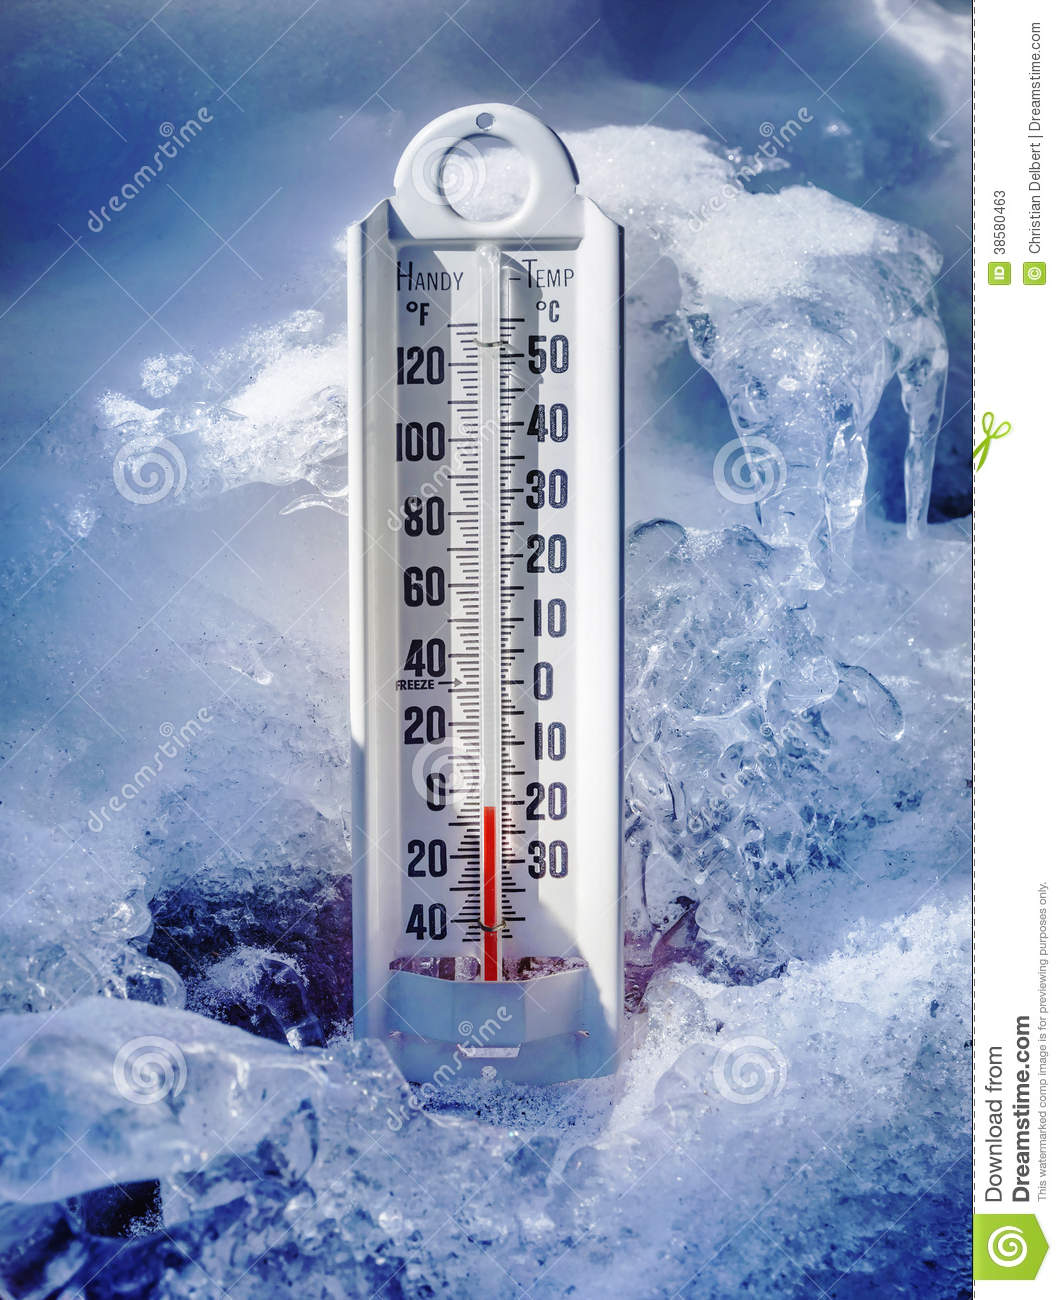 Ice Cold Thermometer In Ice And Snow Stock Photos - Image: 38580463